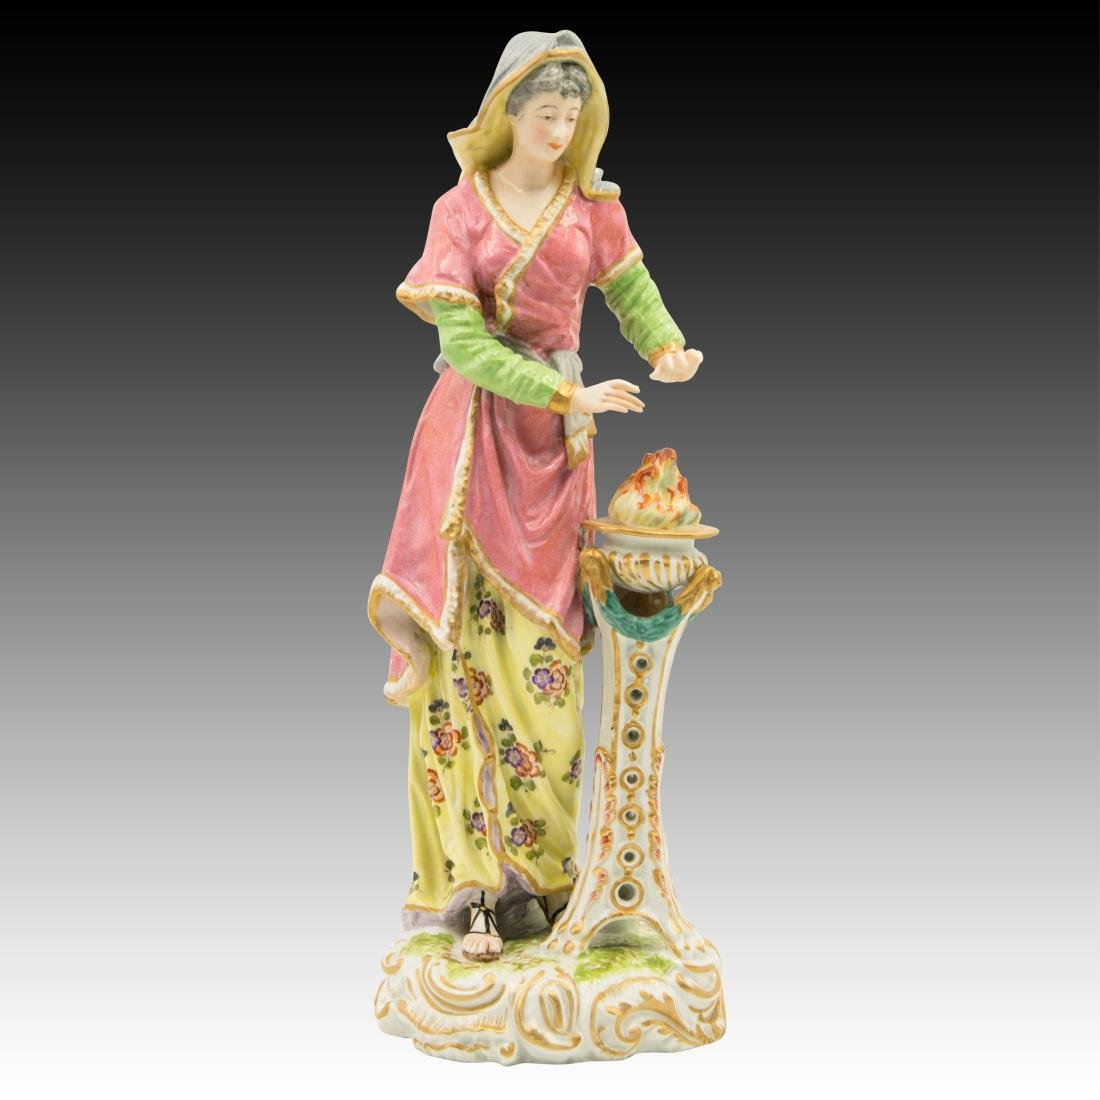 Tall Woman warming her hands by a fire Figurine